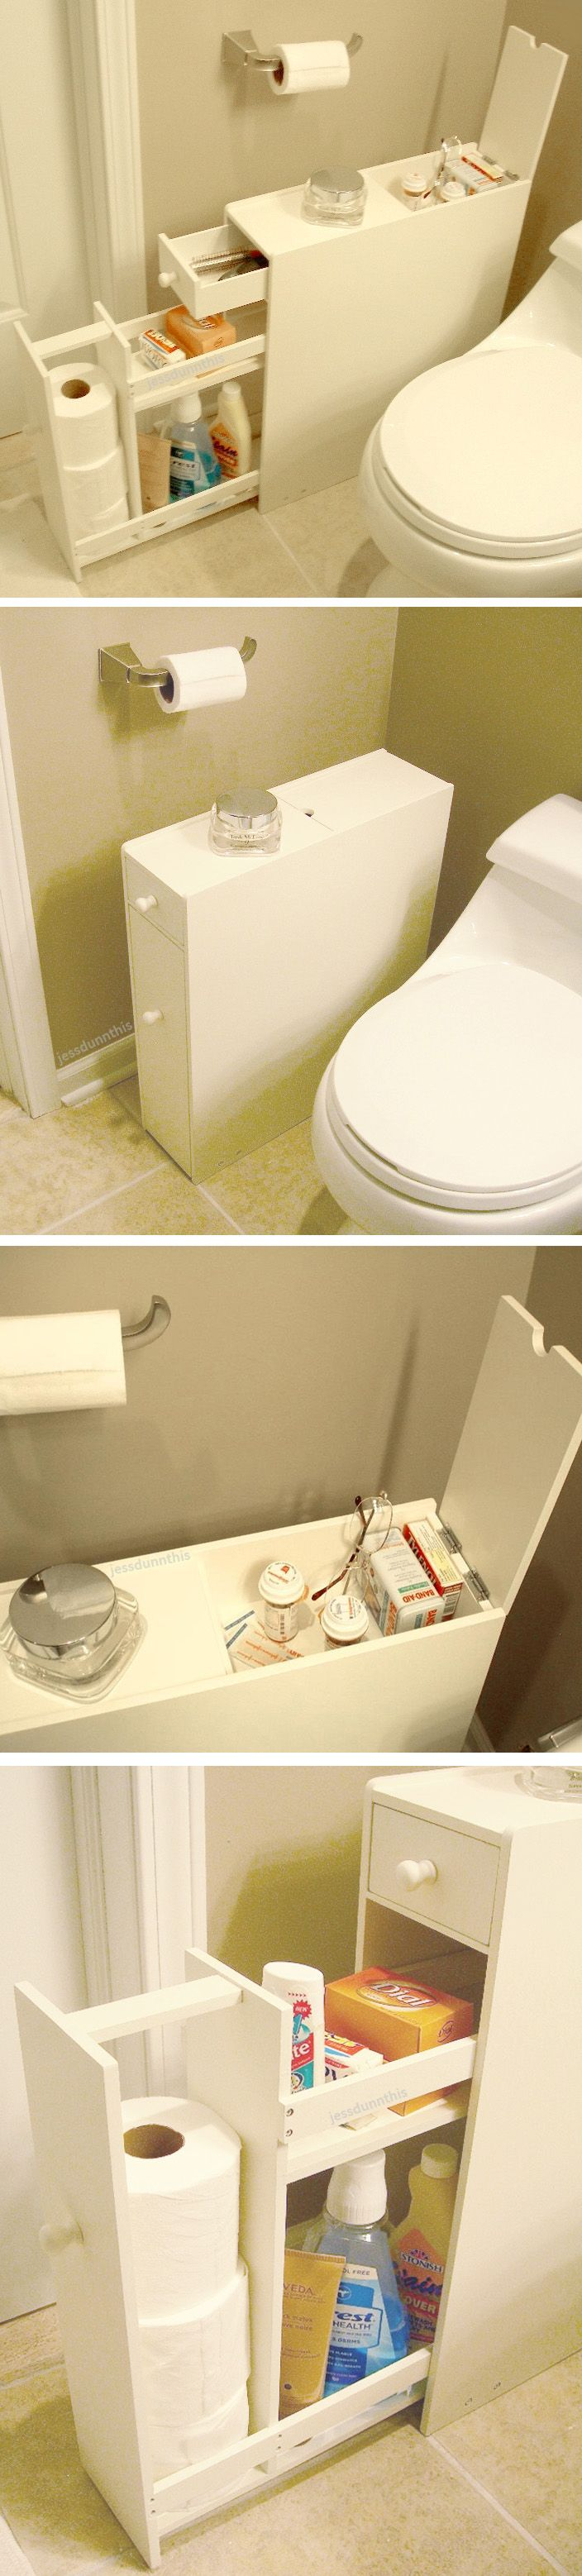 Bathroom space saver floor cabinet // stores up to 12 rolls of toilet paper and…